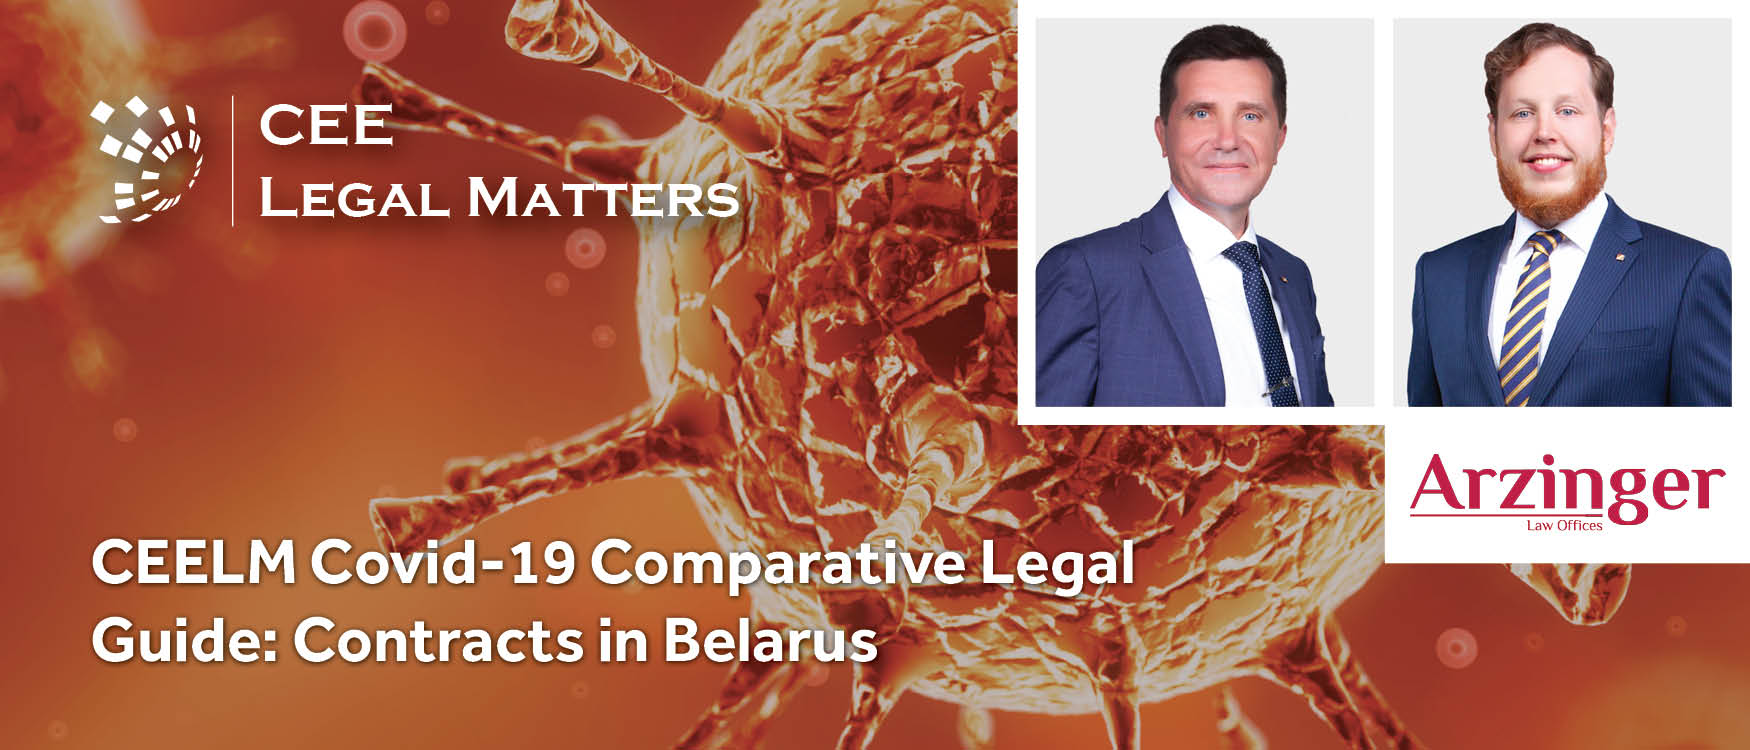 CEELM Covid-19 Comparative Legal Guide: Contracts in Belarus